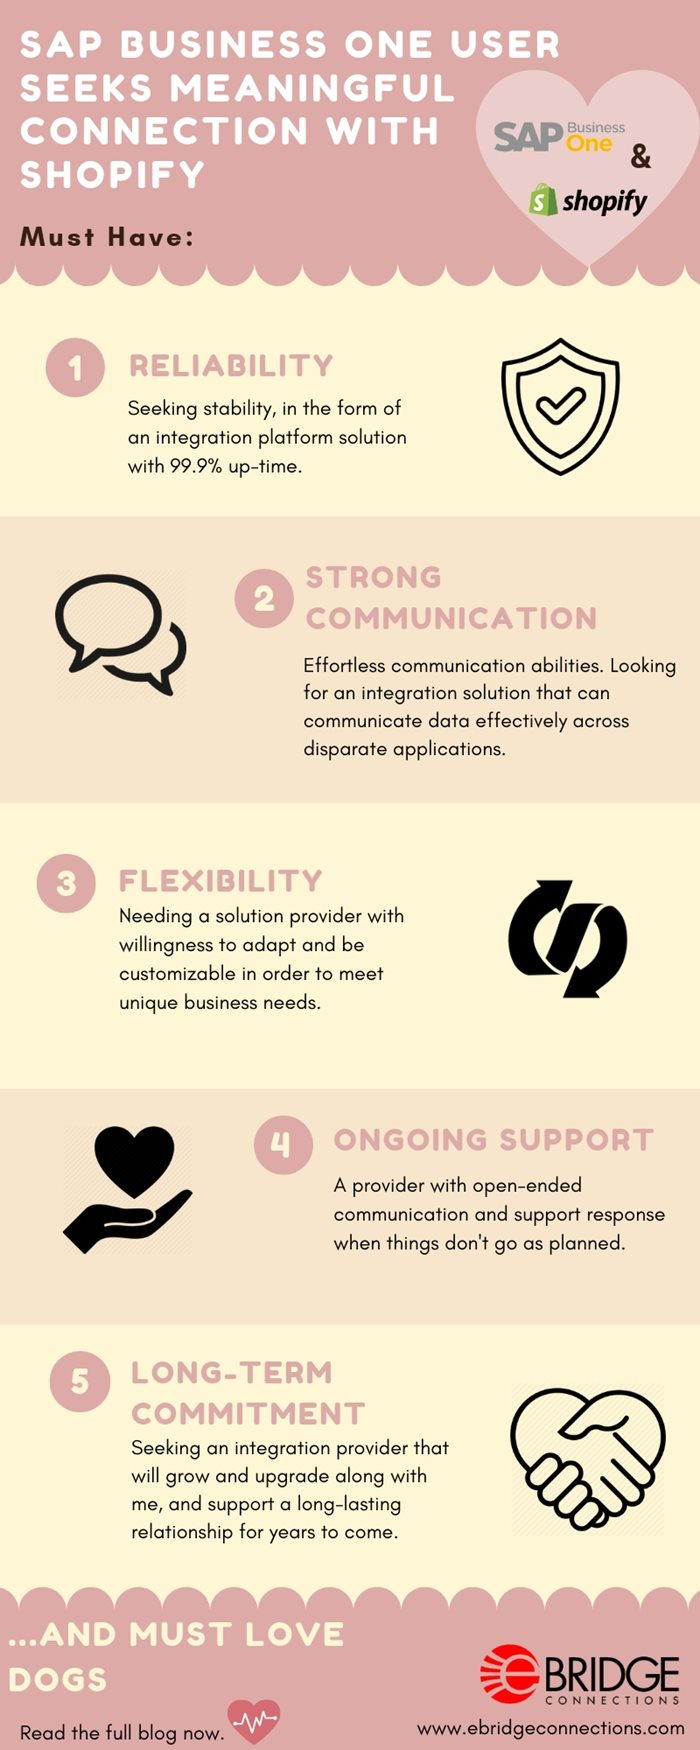 SAP-Business-One-User-Seeks-Meaningful-Connection-with-Shopify-infographic.jpg